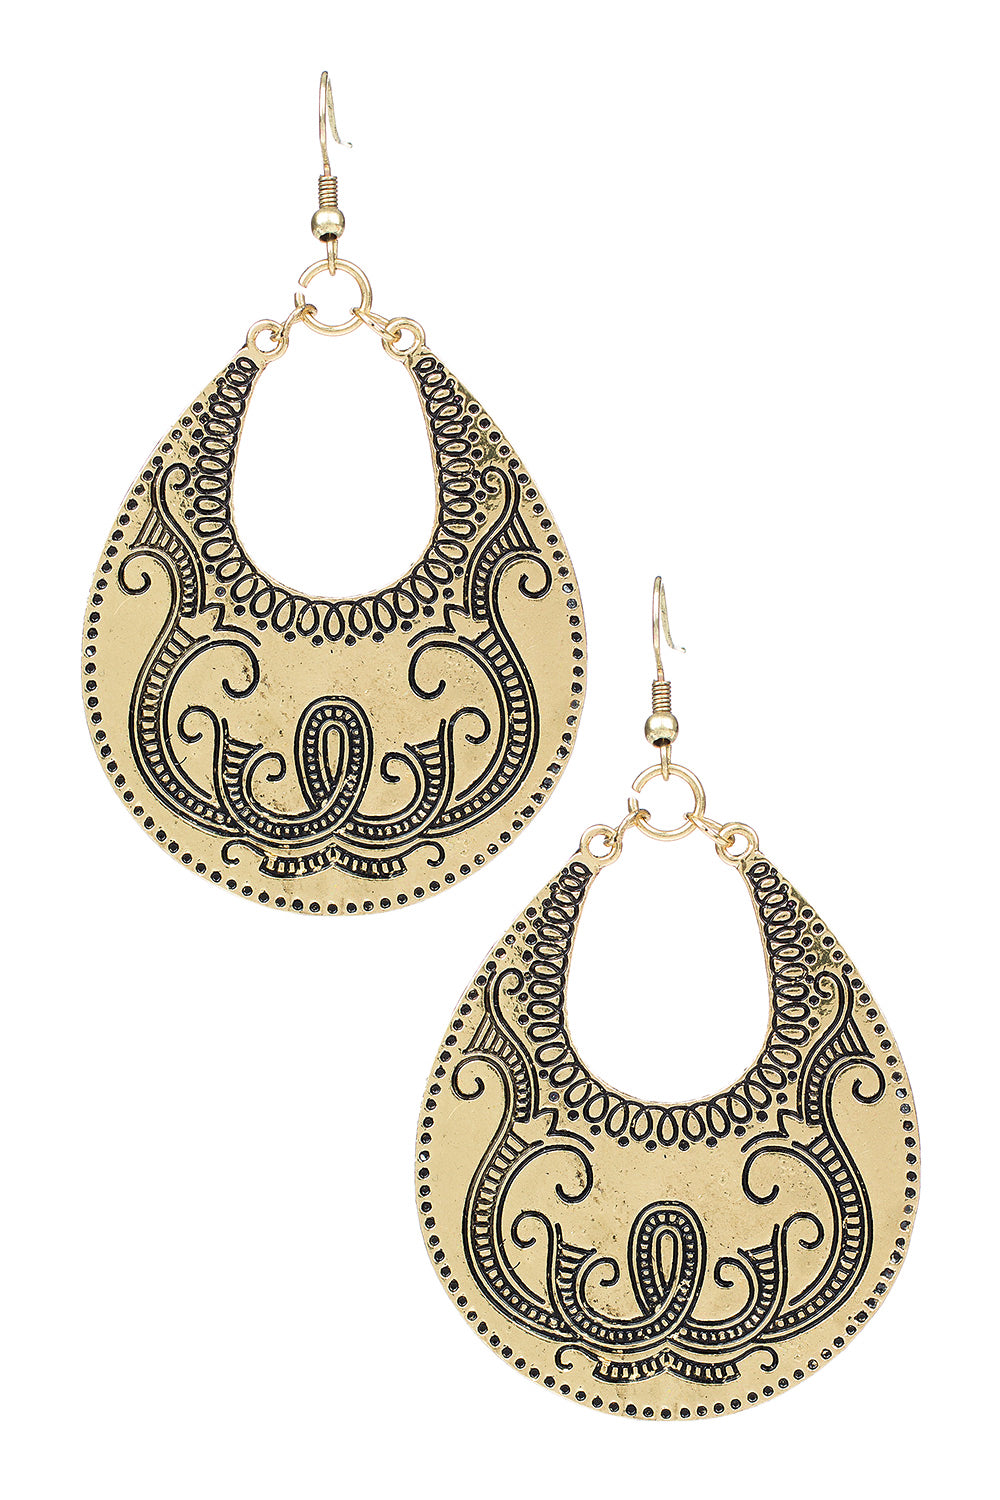 Type 3 Gondola Earrings in Gold